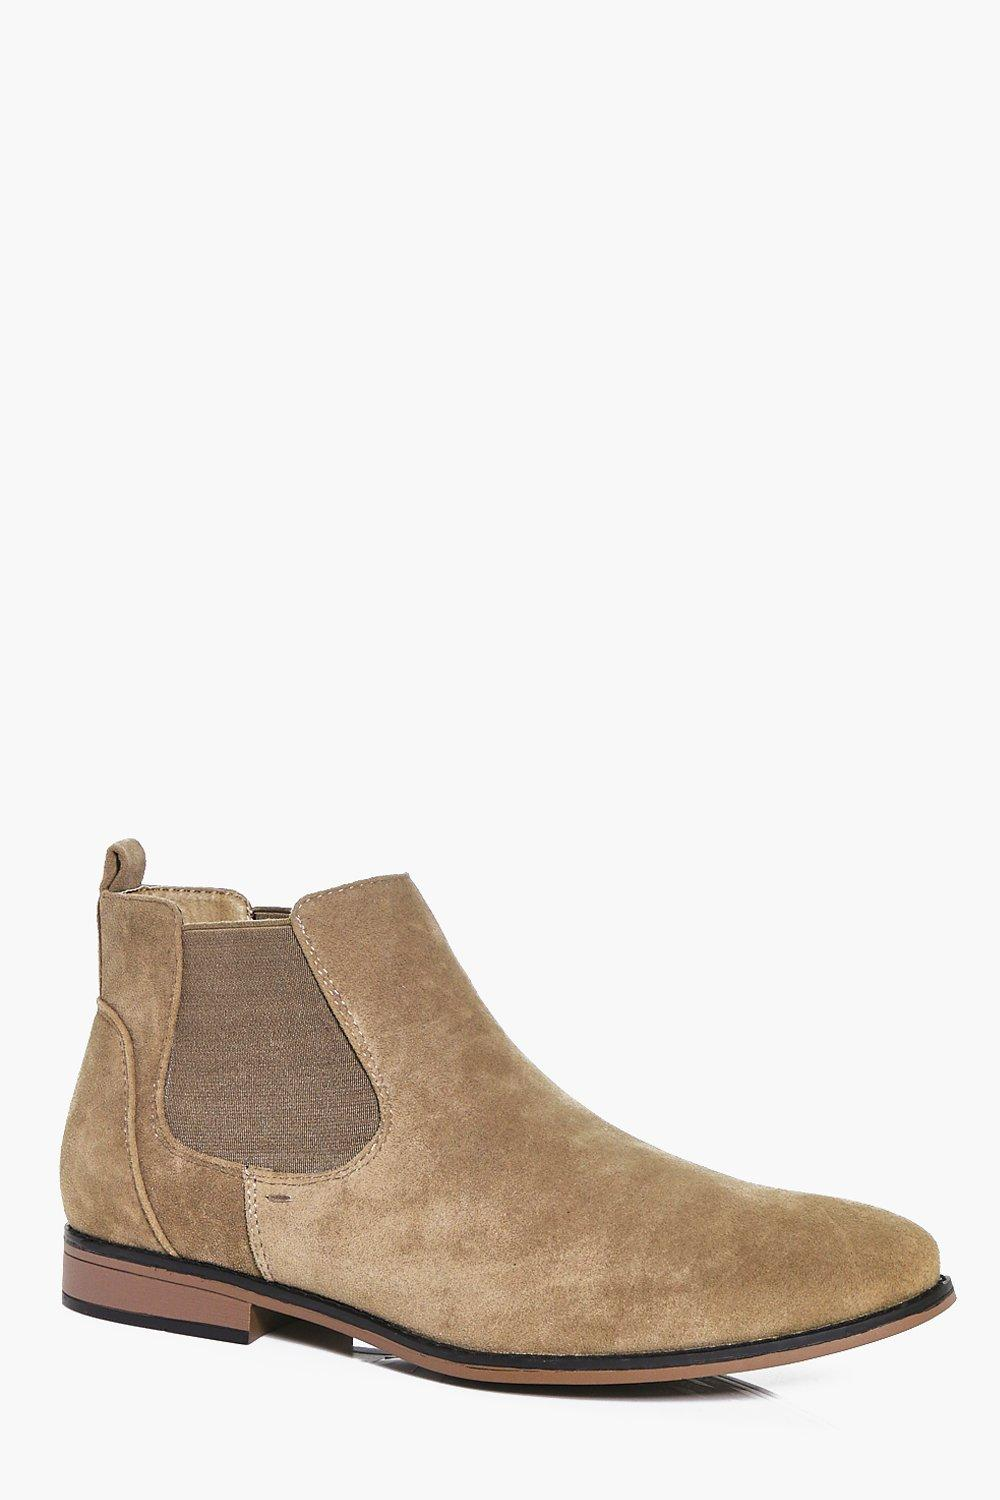 boohooMAN sand Faux Suede Chelsea Boots